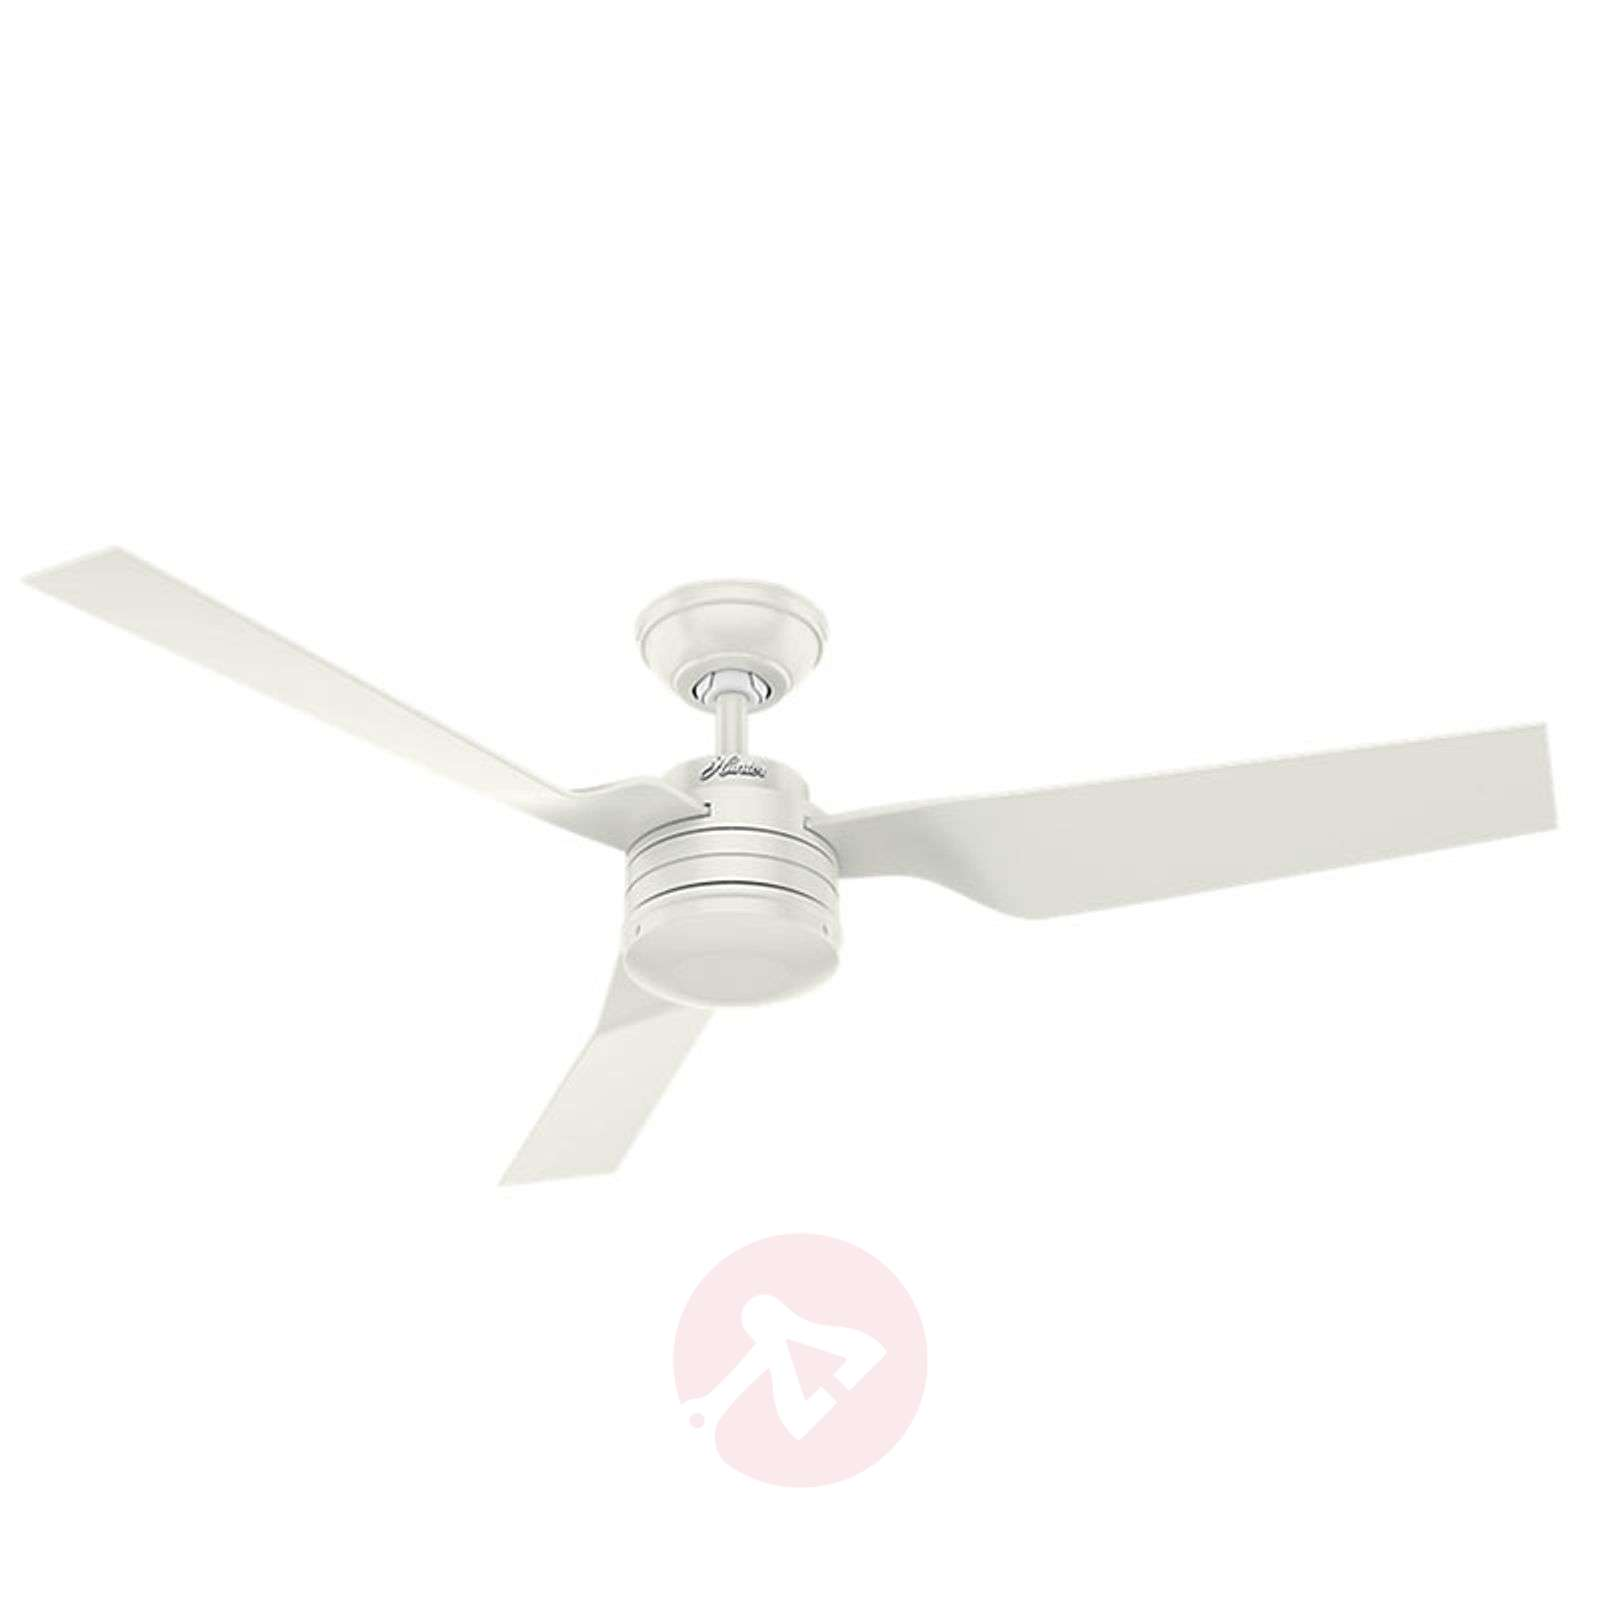 Hunter Cabo Frio simple ceiling fan-4545018-01